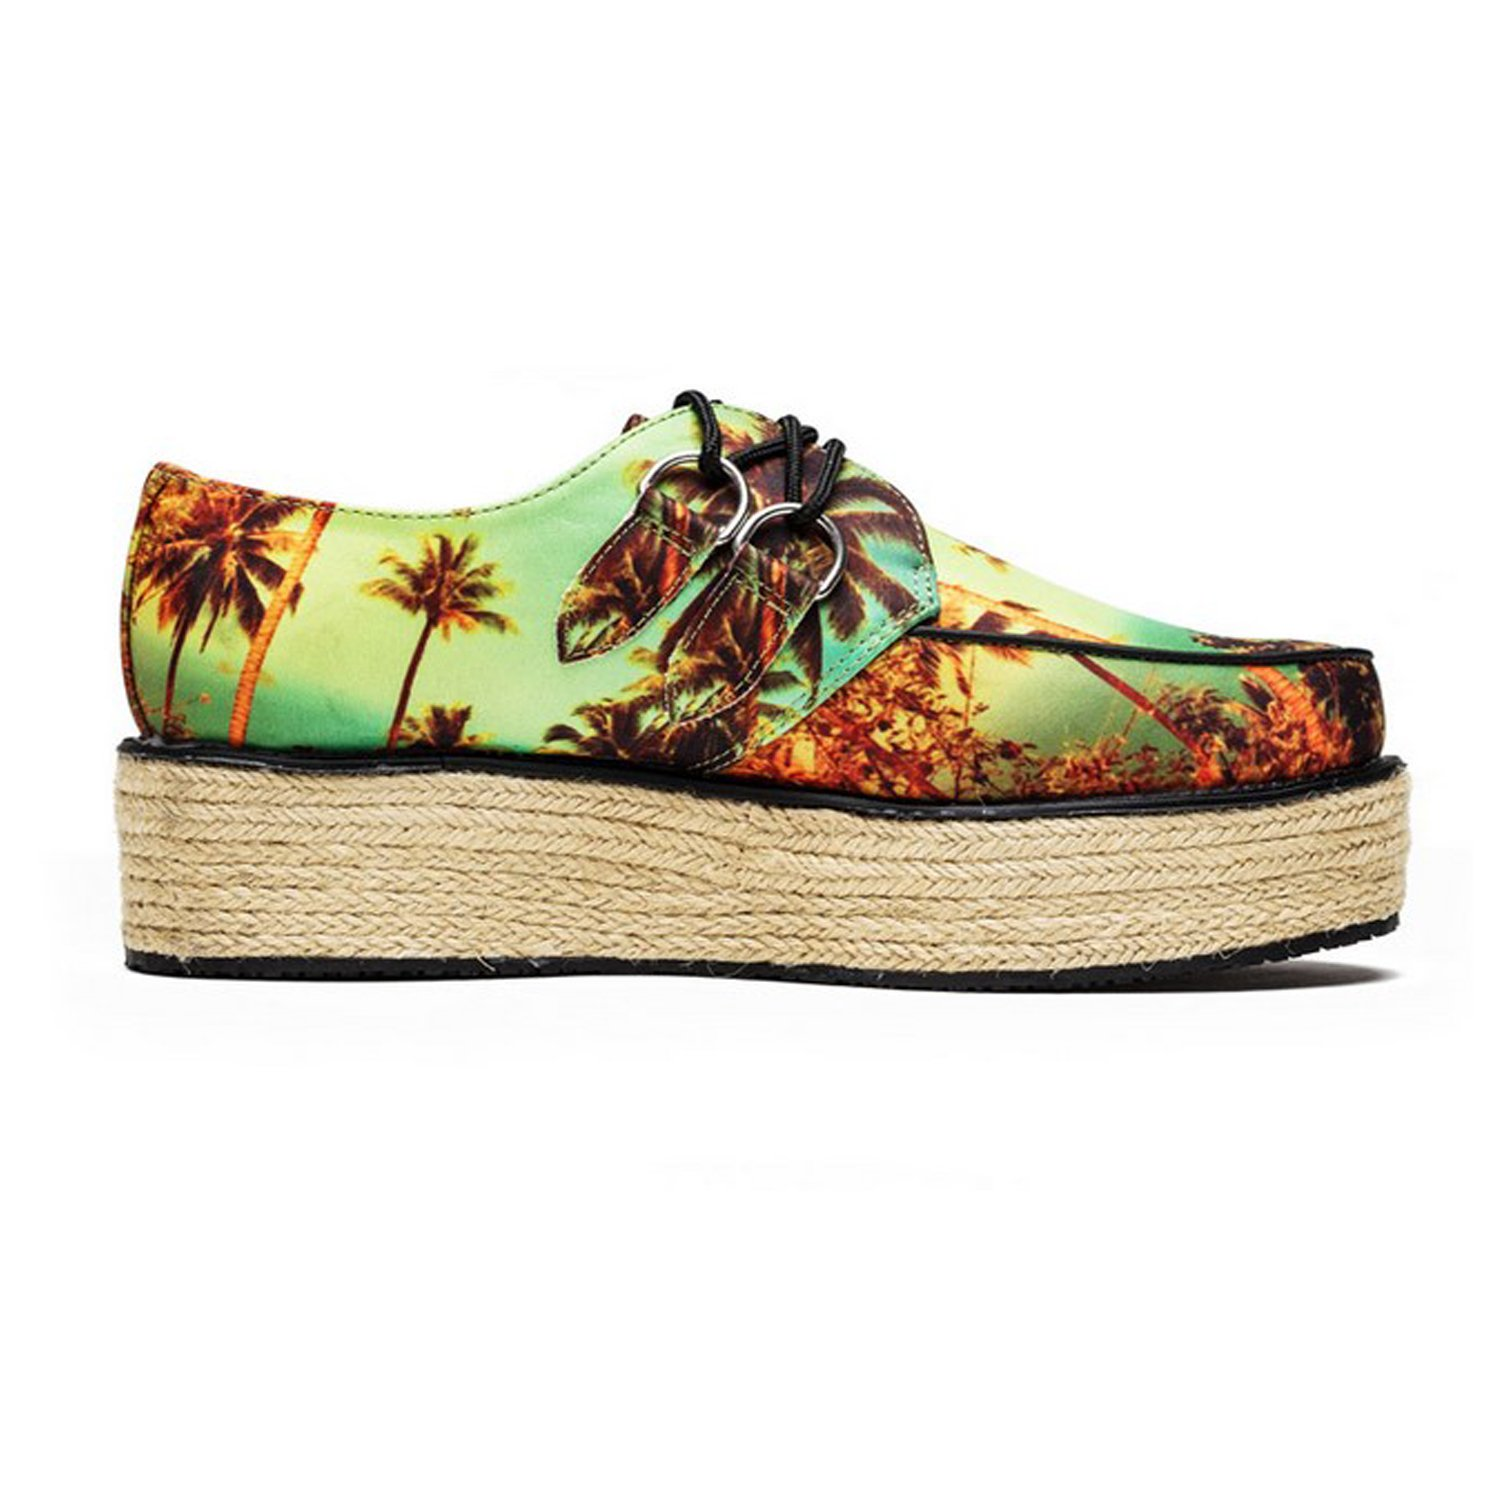 T.U.K. Shoes Women's Yo T.U.K. Sunset Print Jute Creeper Wraps EU40 / UKW7 m77EWUzoy